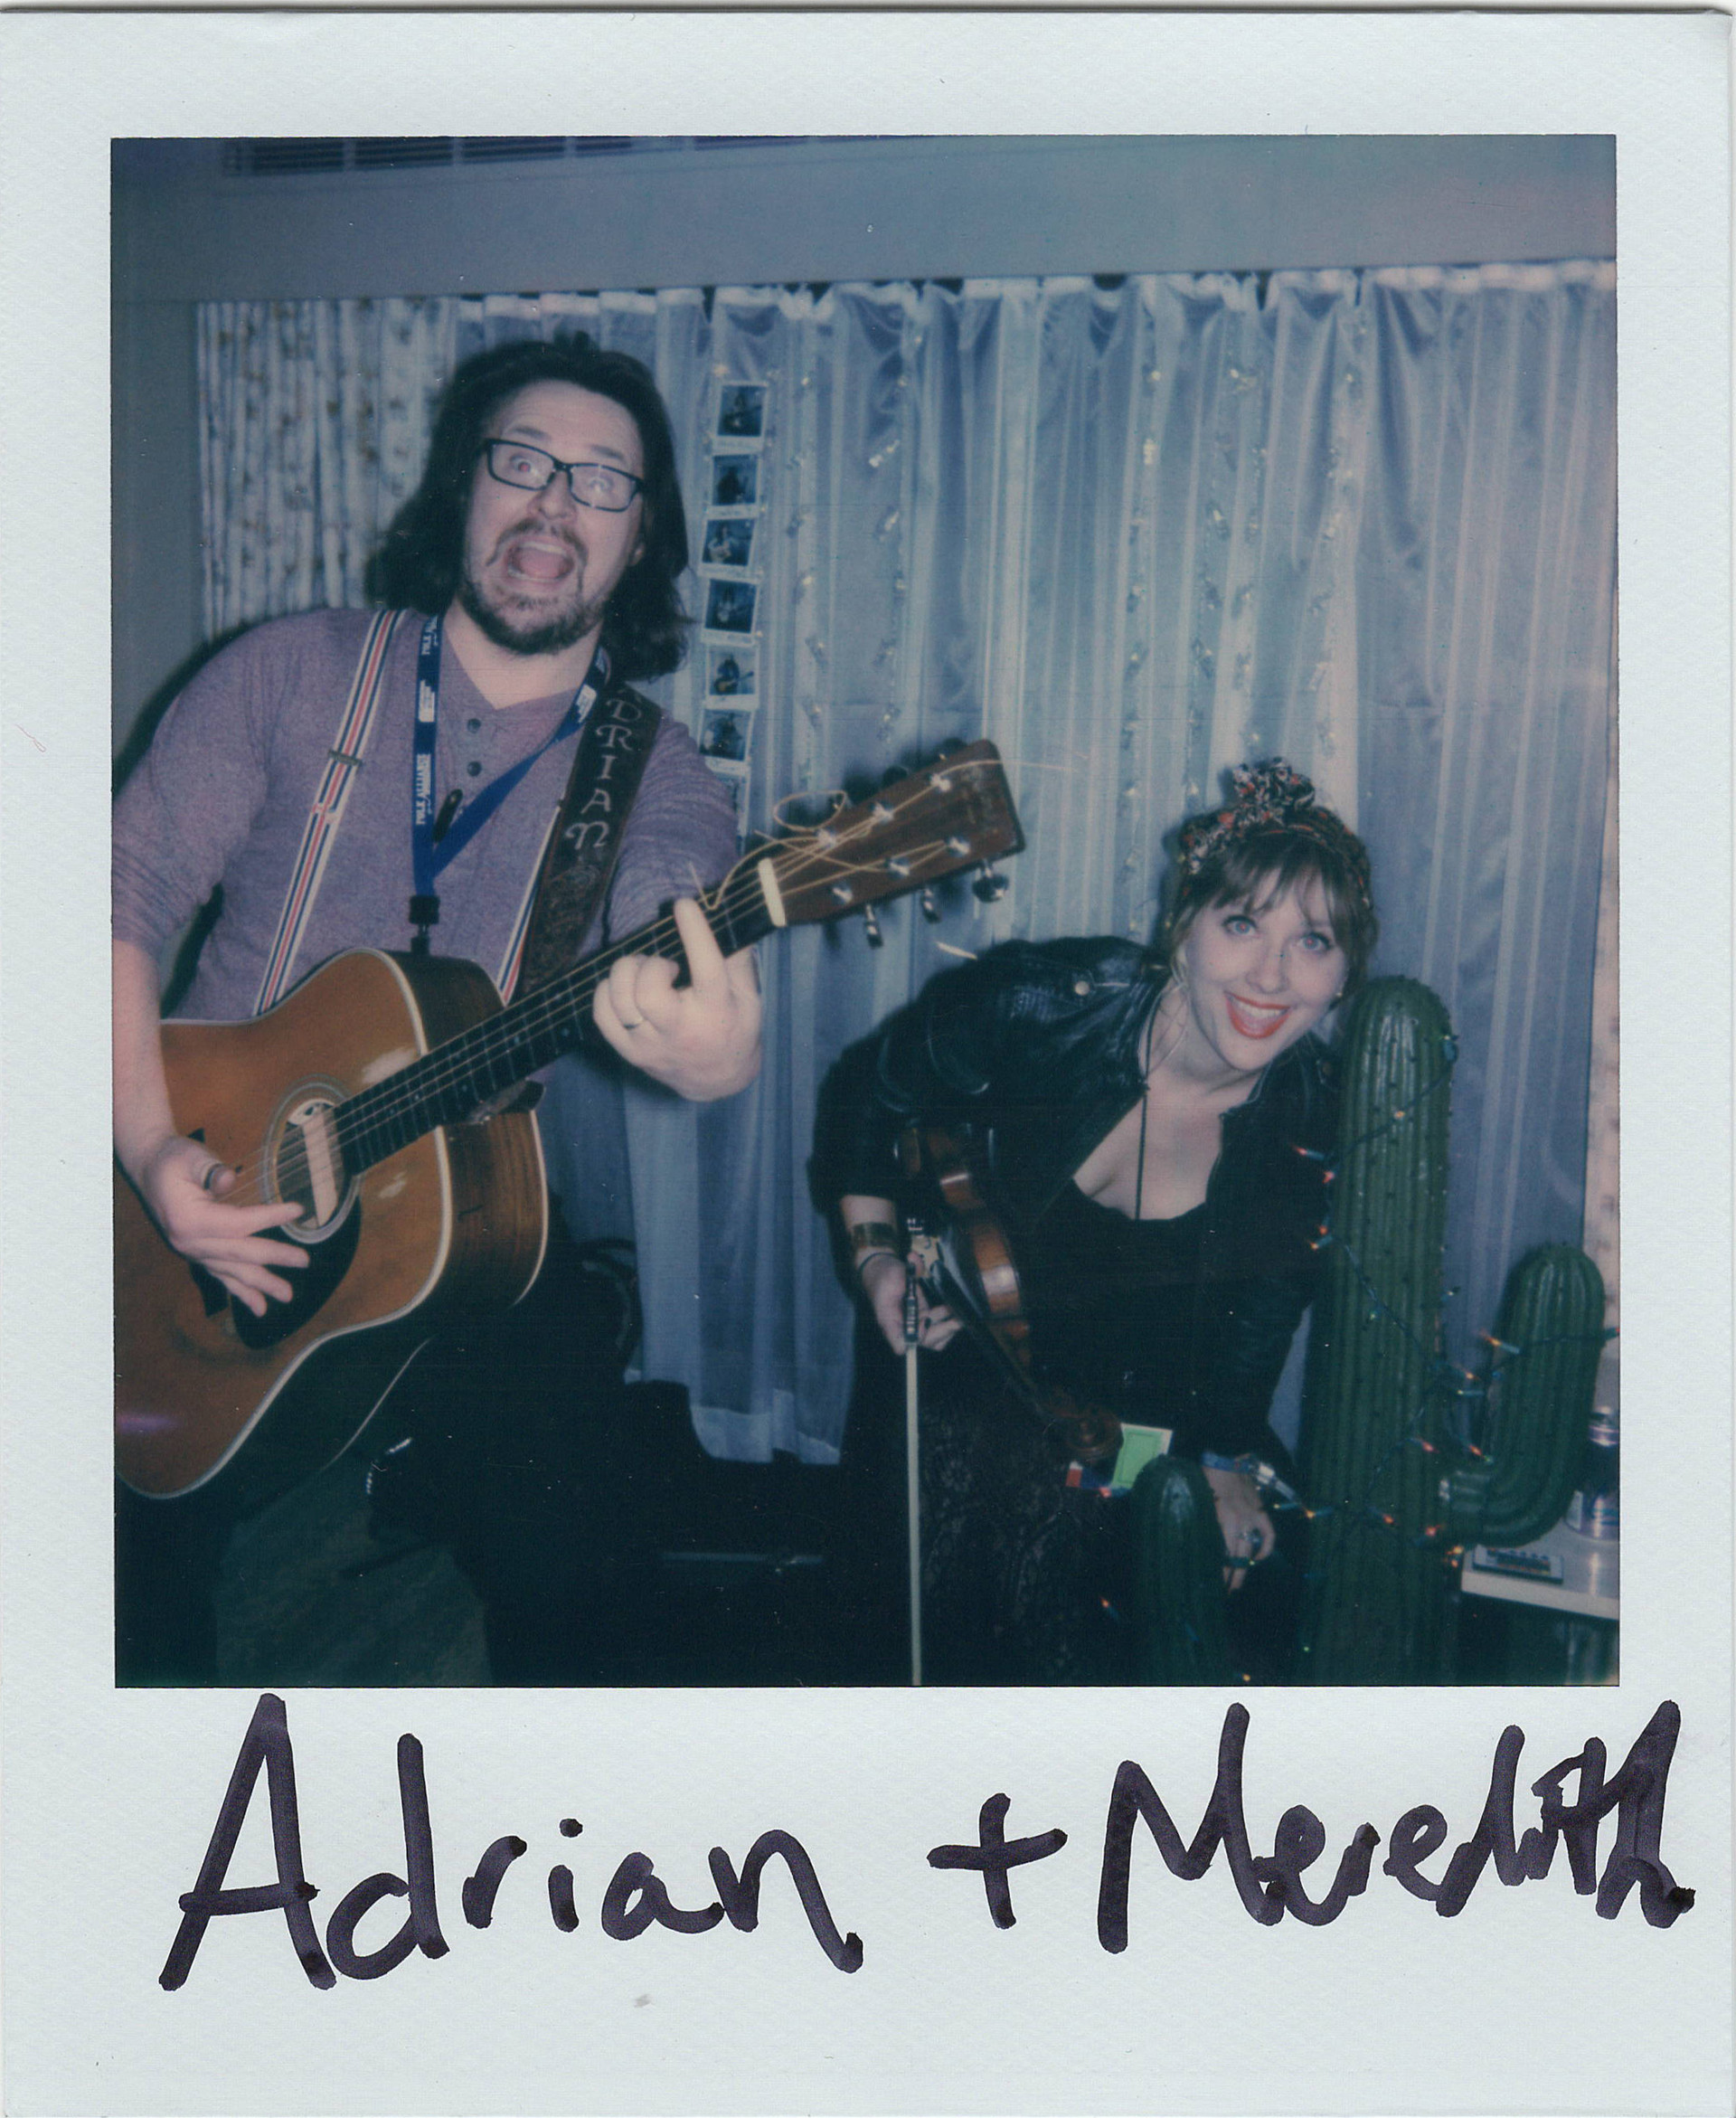 Adrian+Meredith